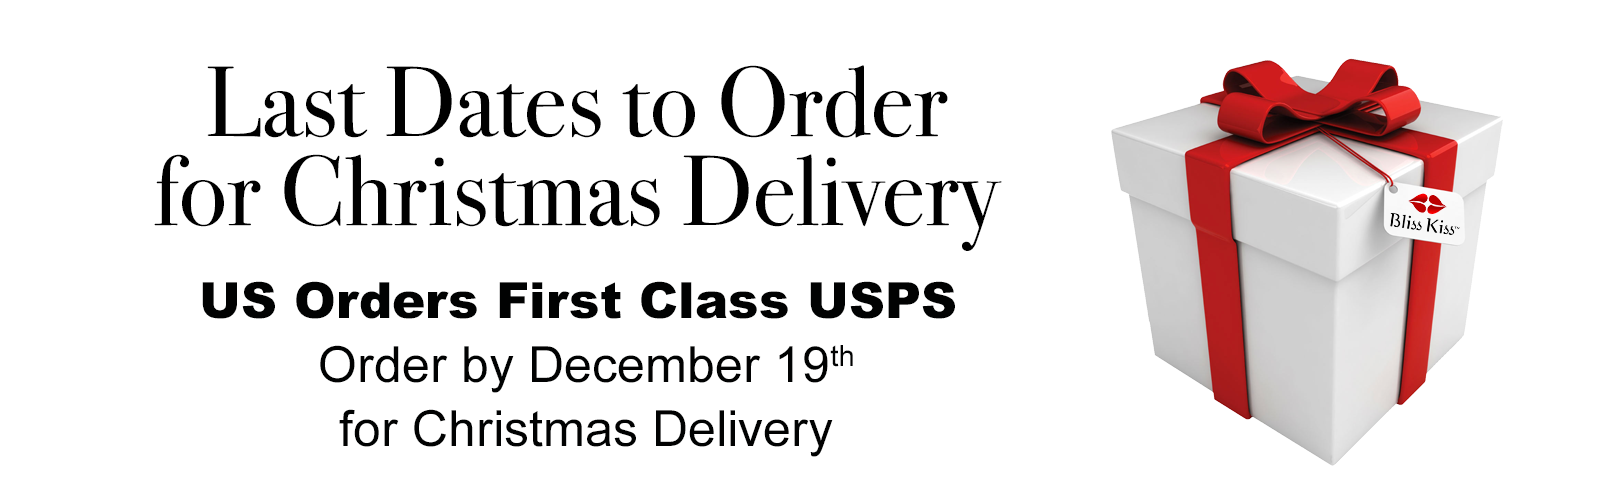 last-date-to-order-before-christmas.png